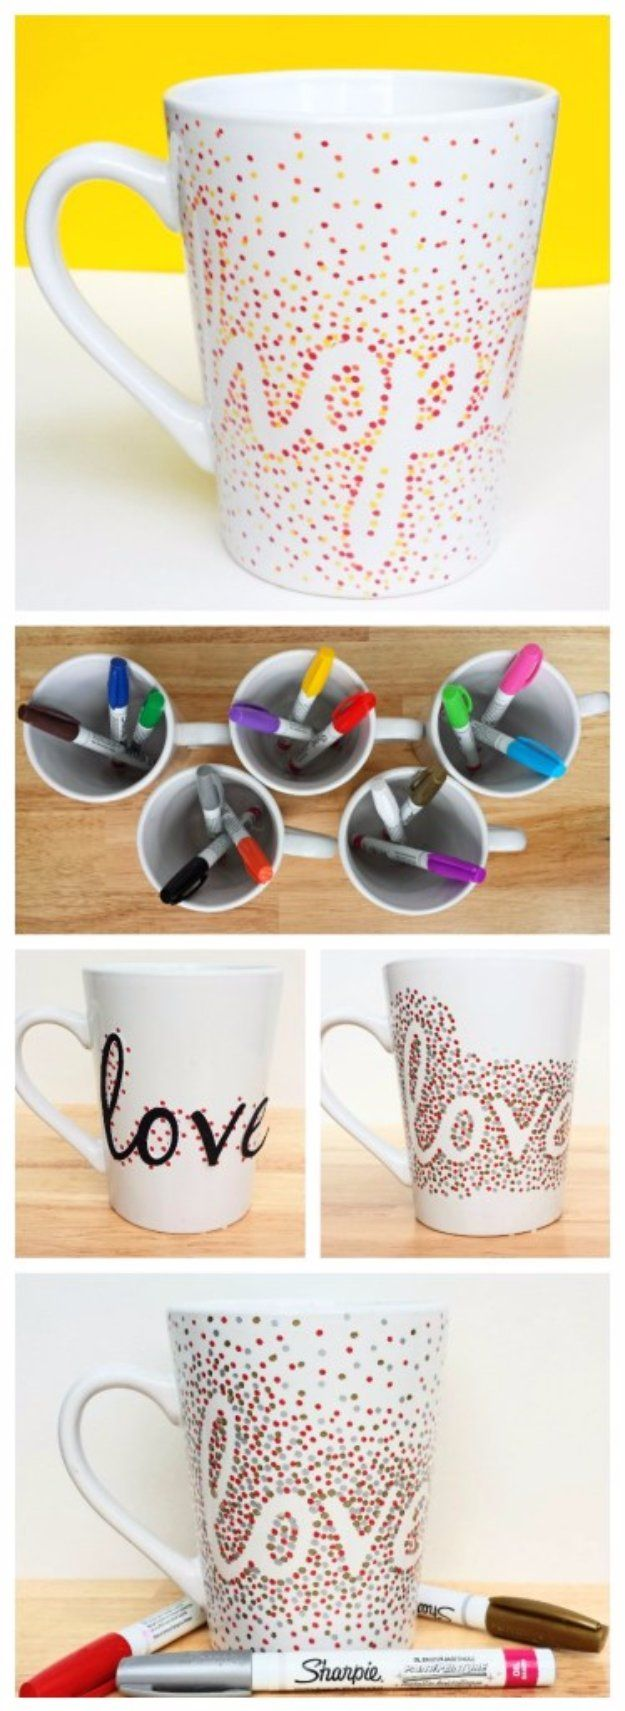 25 best ideas about easy crafts on pinterest easy diy for Diy project ideas to sell